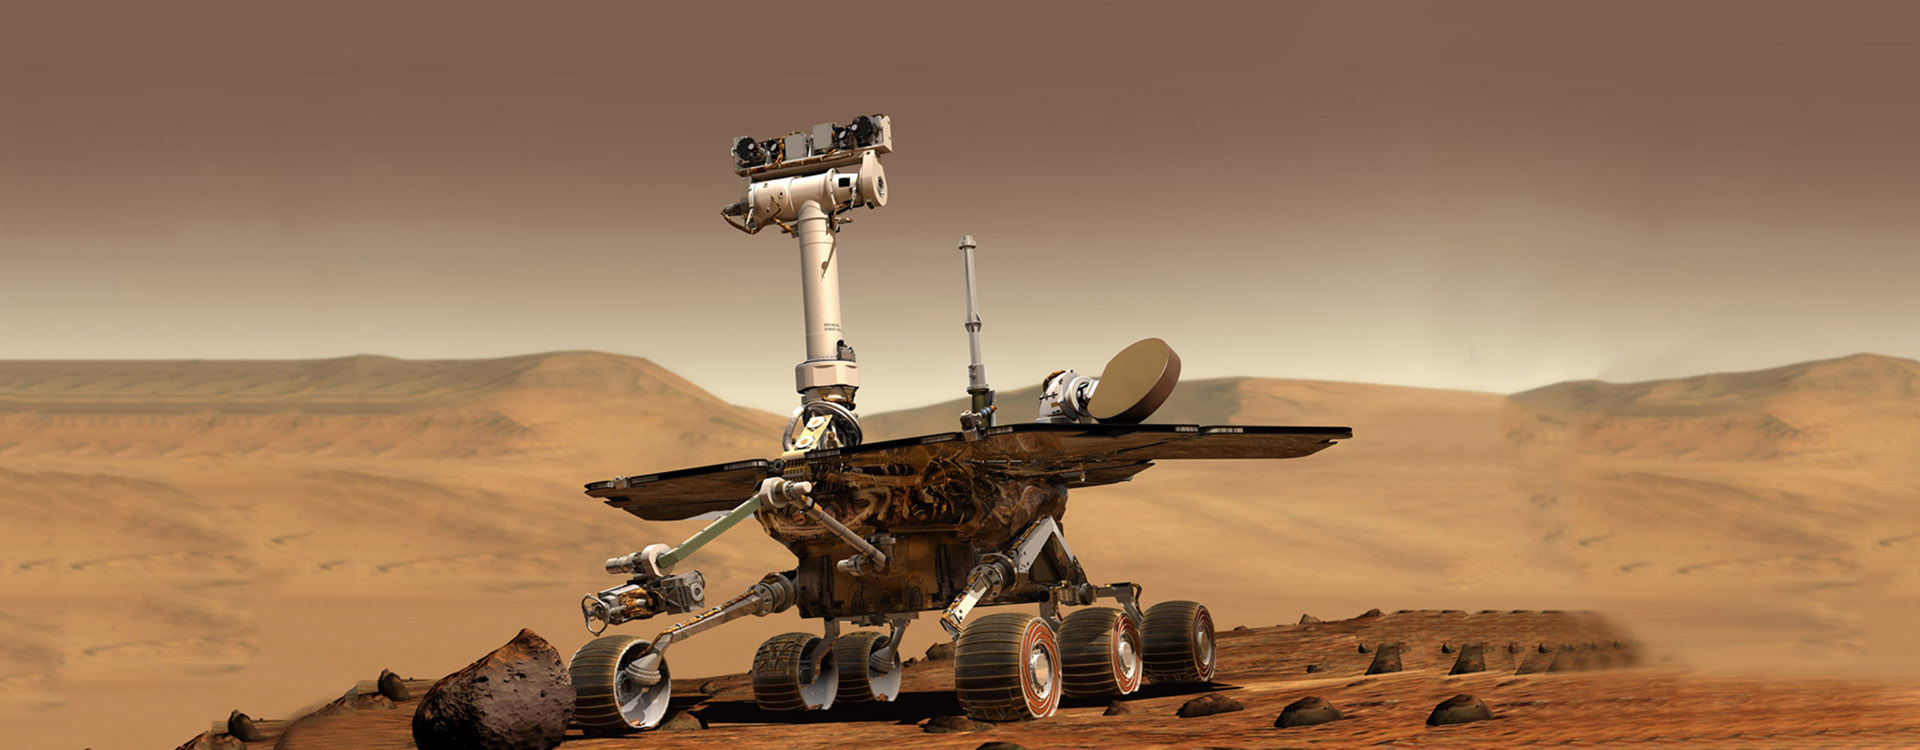 mars rover circuit - photo #22